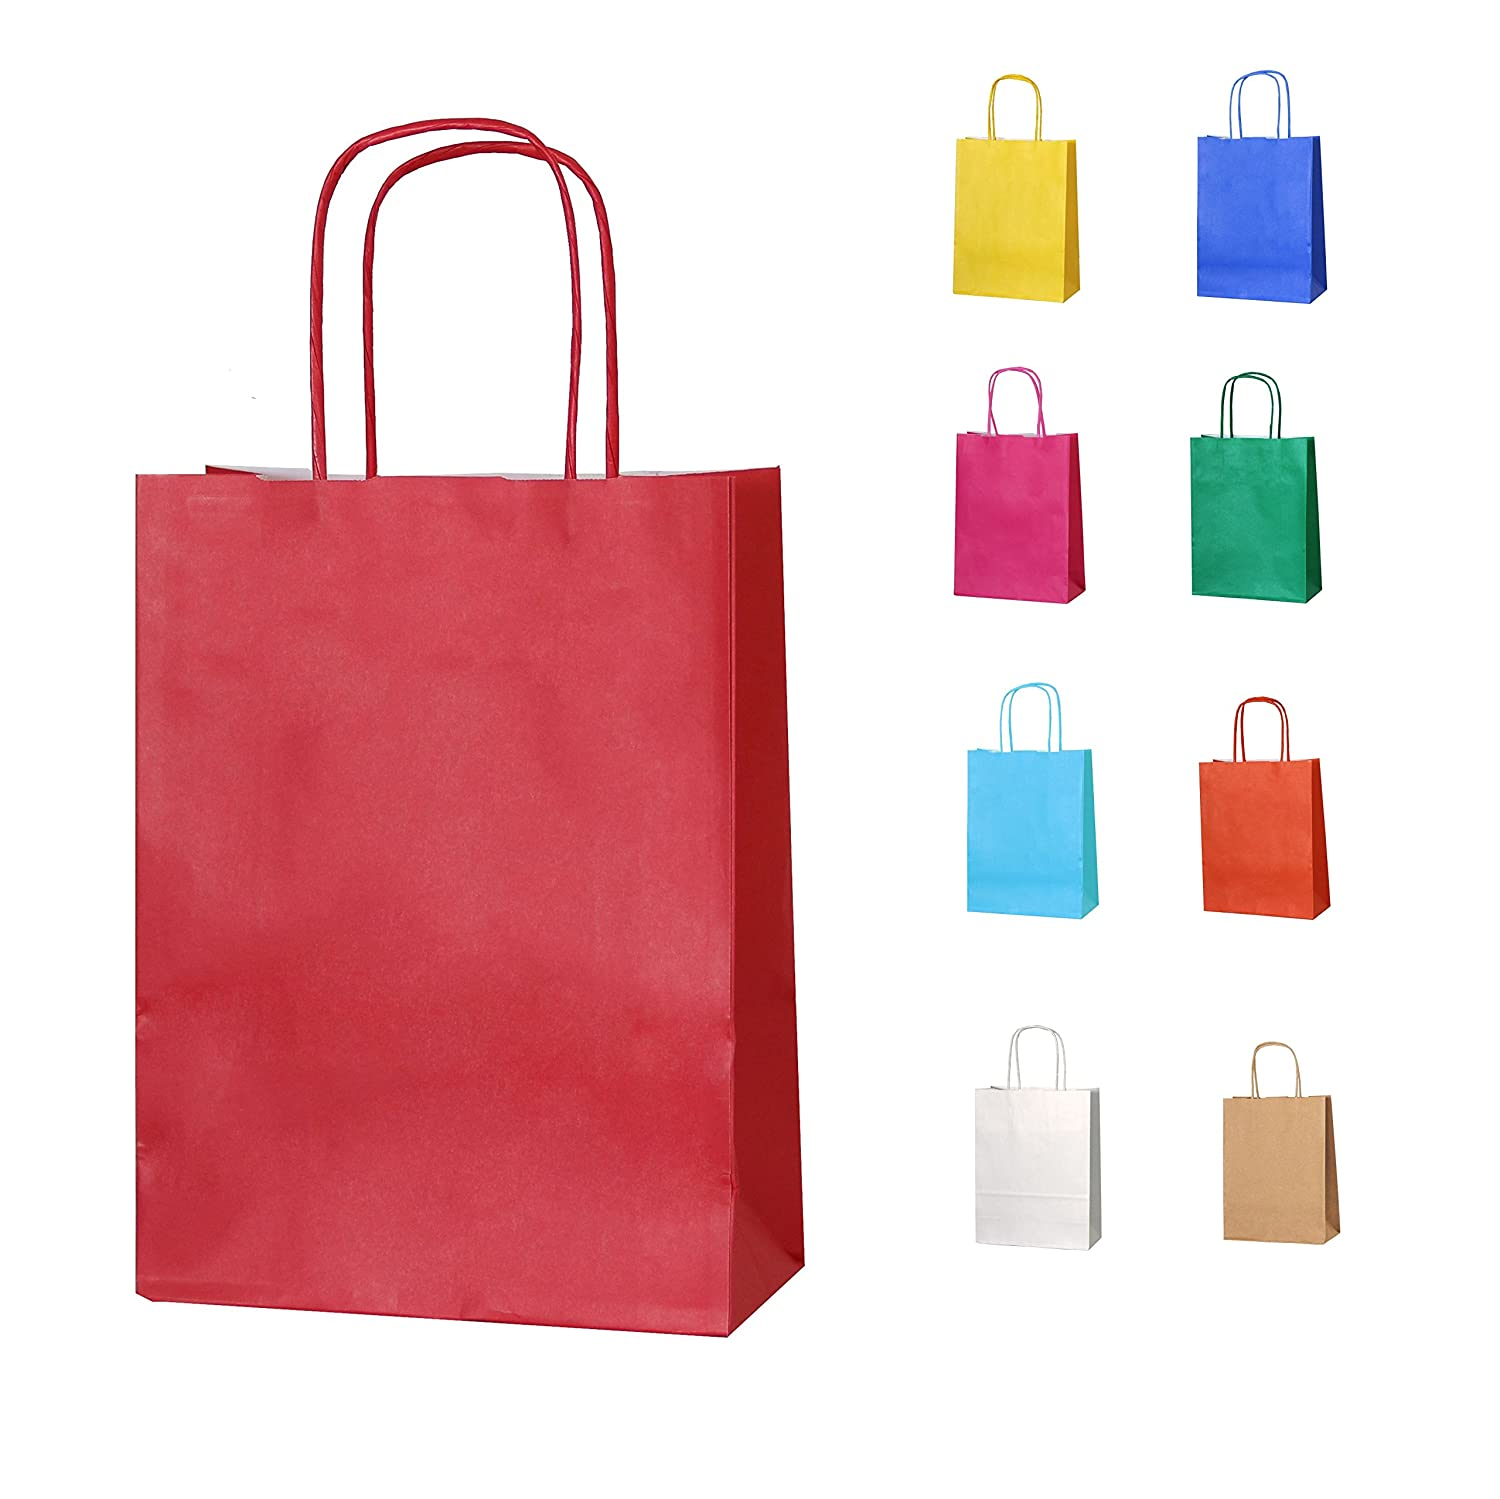 Thepaperbagstore 5 BROWN (TM) SMALL PAPER PARTY BAGS WITH HANDLES - CHOOSE YOUR COLOUR AND QUANTITY